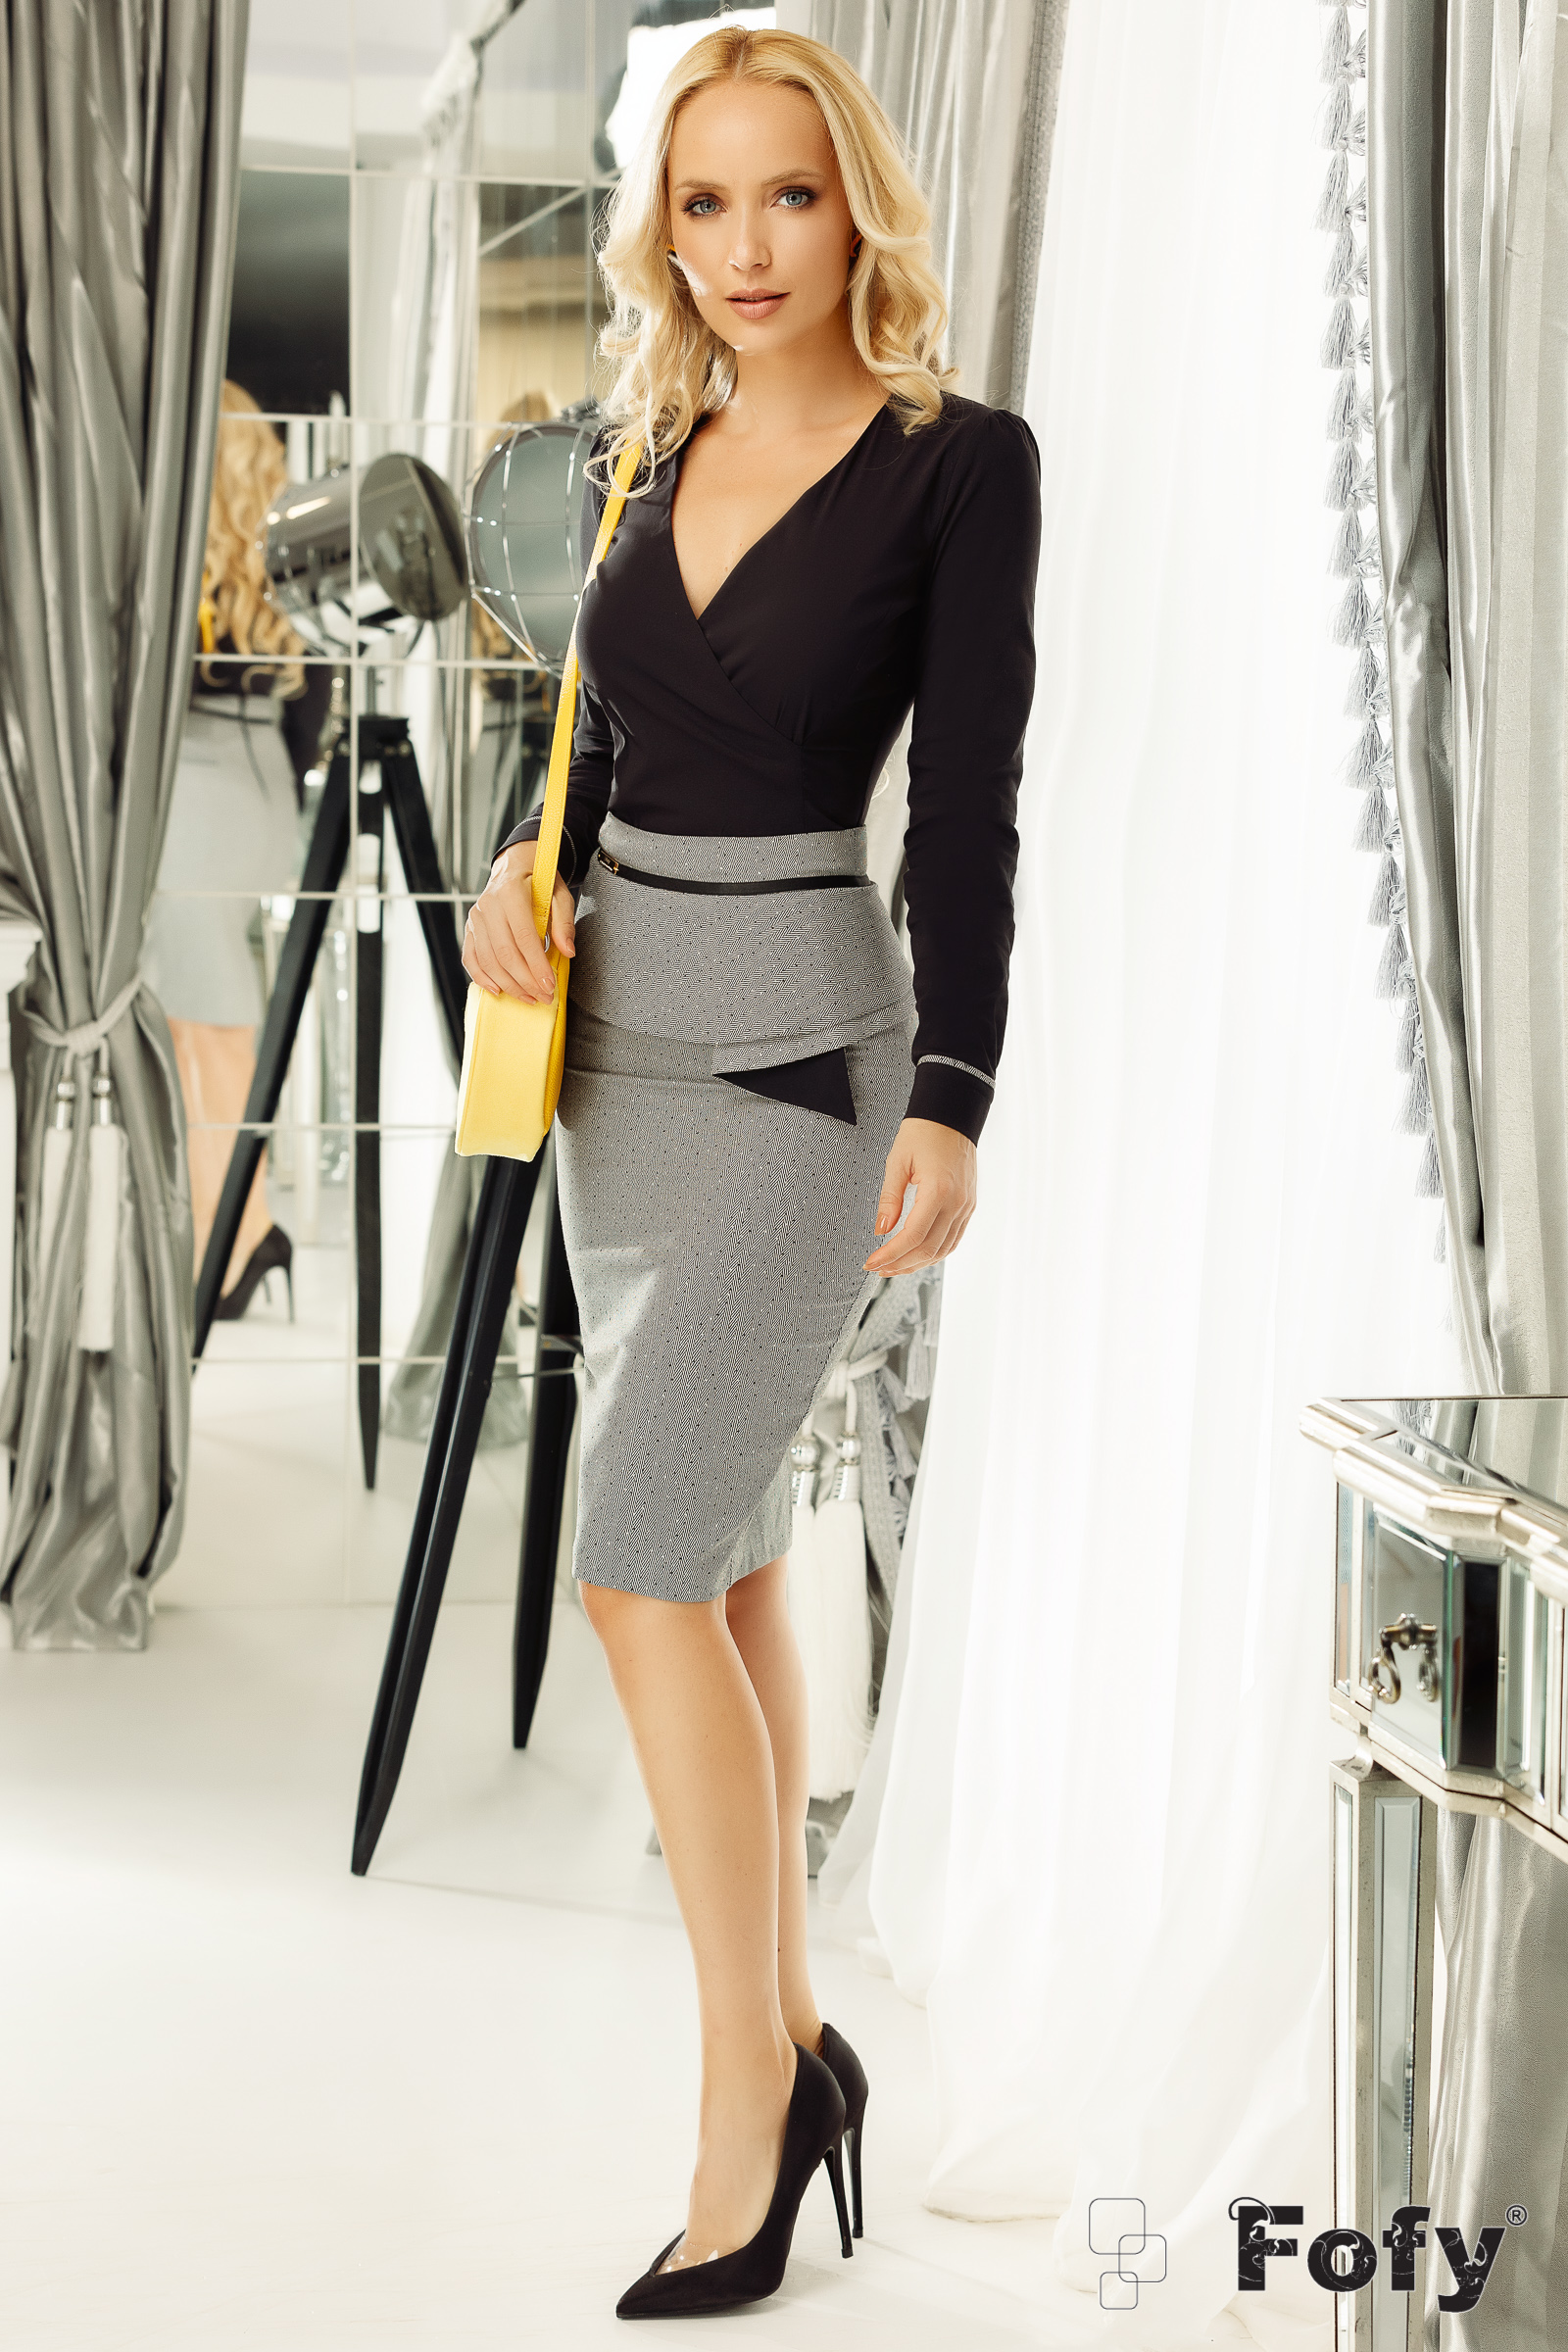 Fofy grey skirt office pencil from non elastic fabric with ruffle details